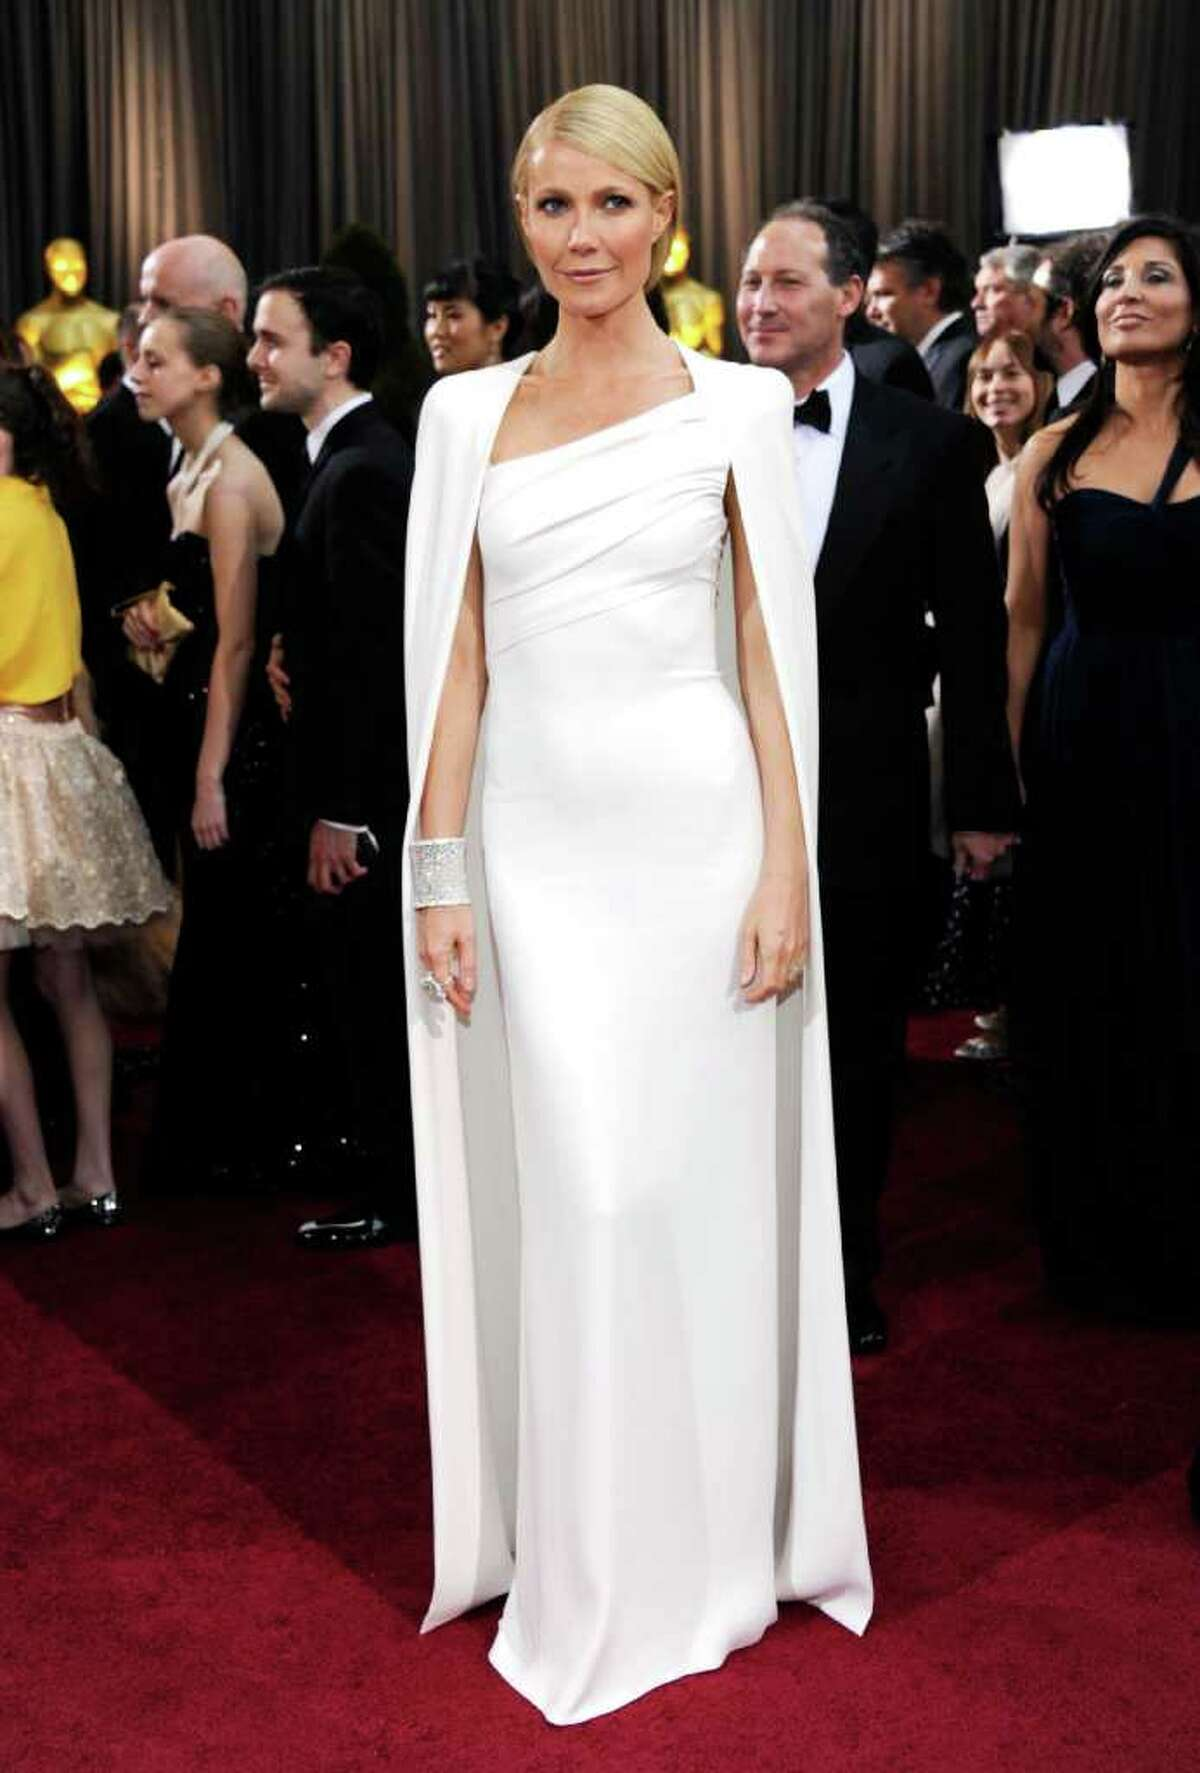 Gwyneth Paltrow donned a white Tom Ford cape dress to mixed reviews.